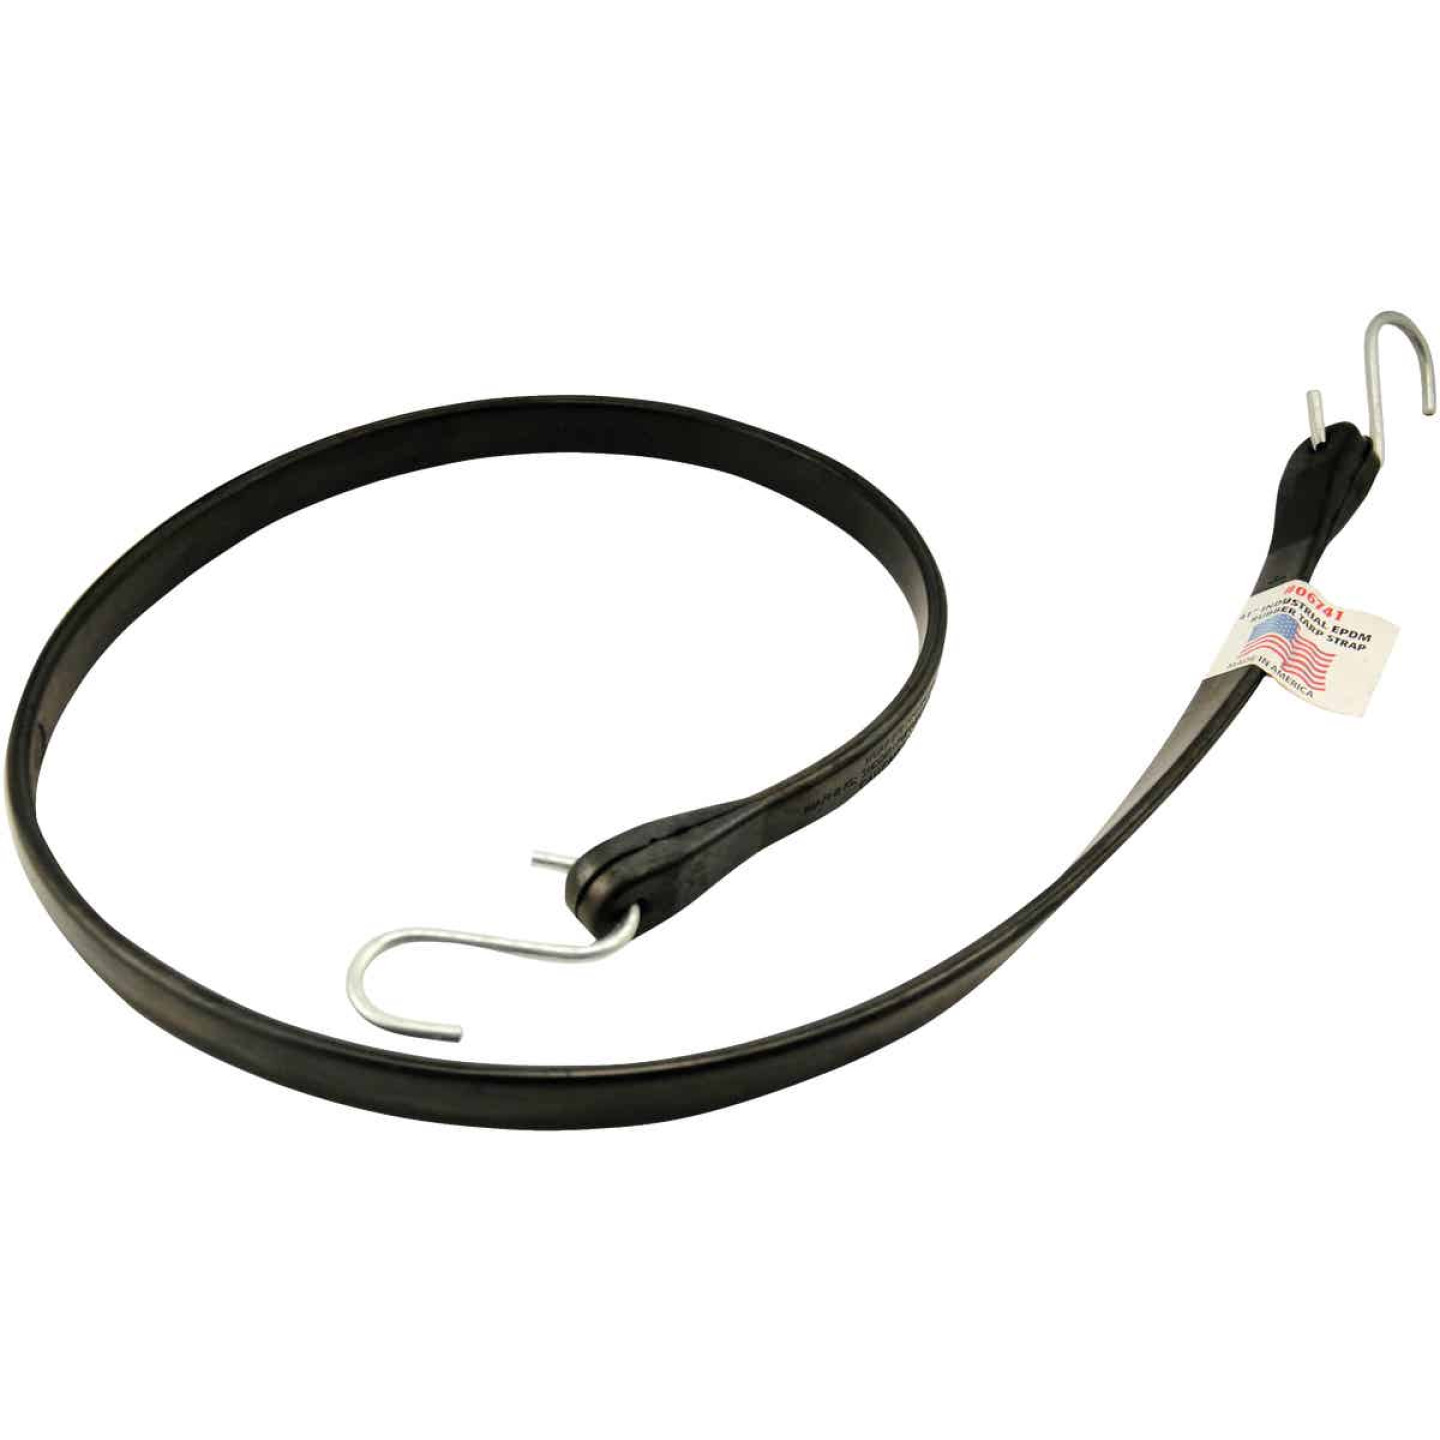 Erickson 44 In. Hook-to-Hook Black Industrial EDPM Rubber Tarp Strap Image 1